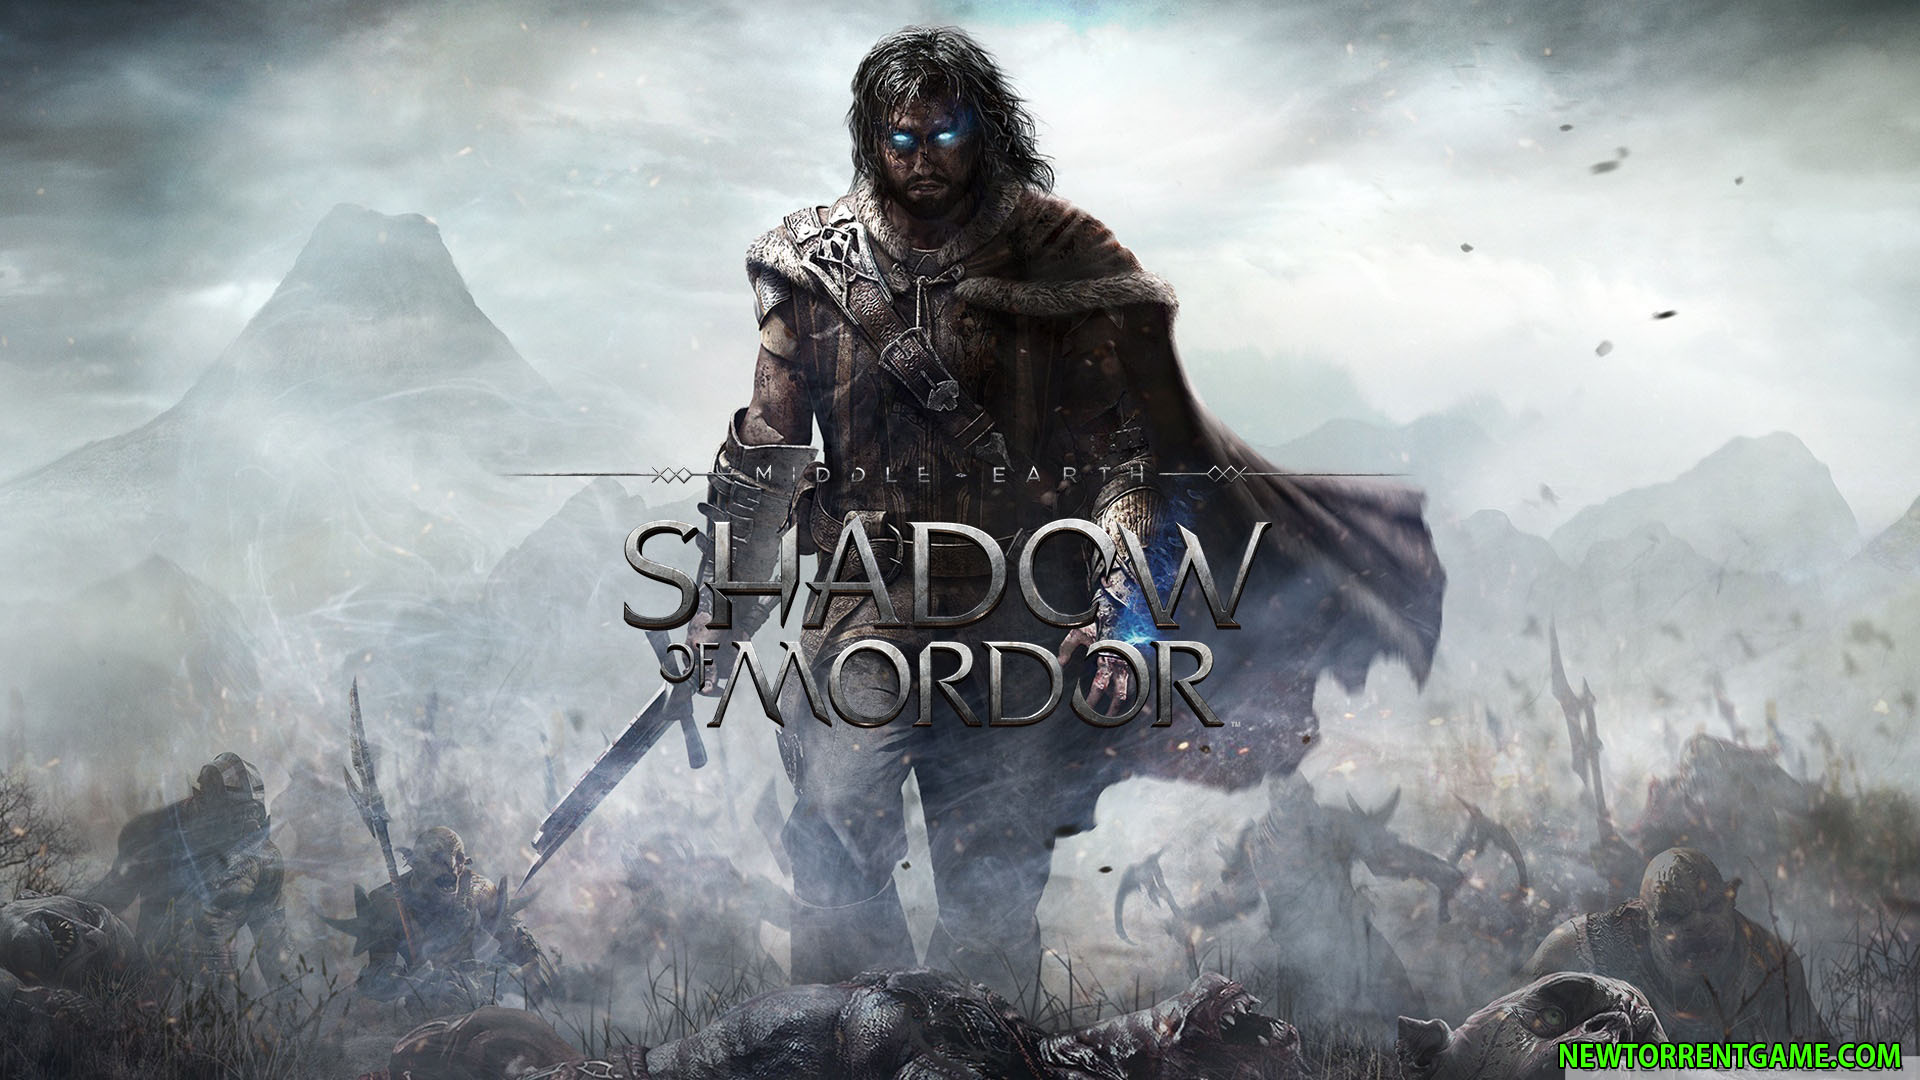 Middle Earth Shadow Of Mordor torrent download